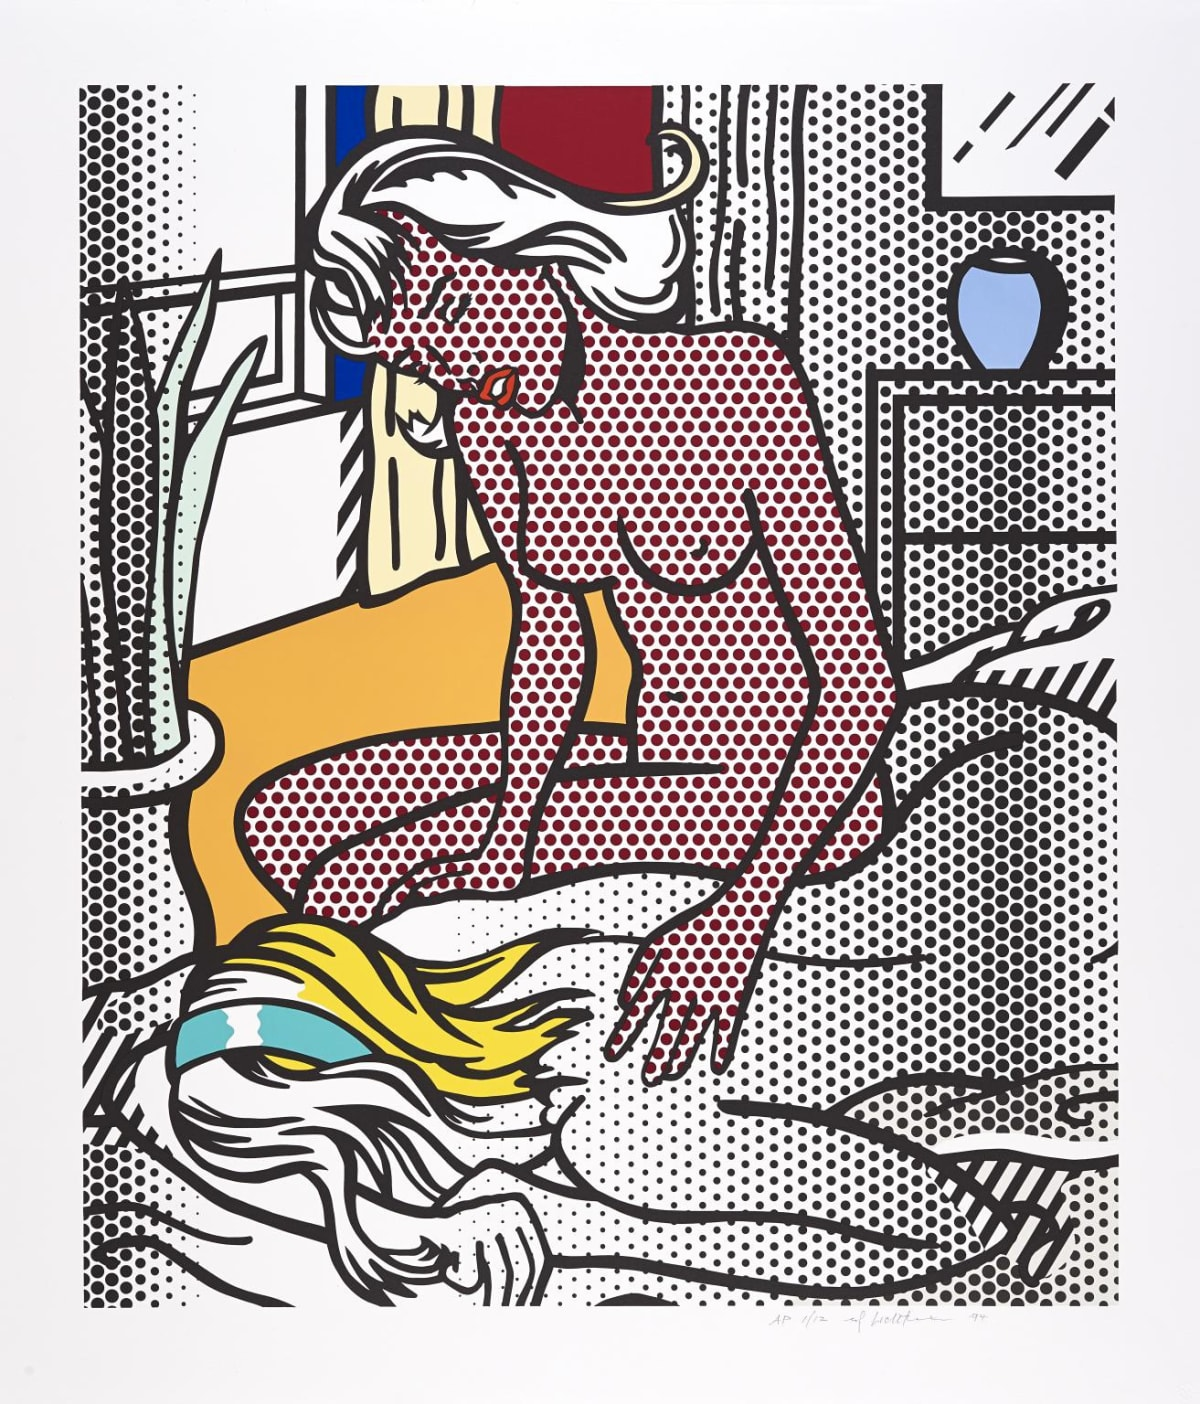 Two Nudes, 1994, by Roy Lichtenstein, Relief Print from an edition of 40, at Coskun Fine Art